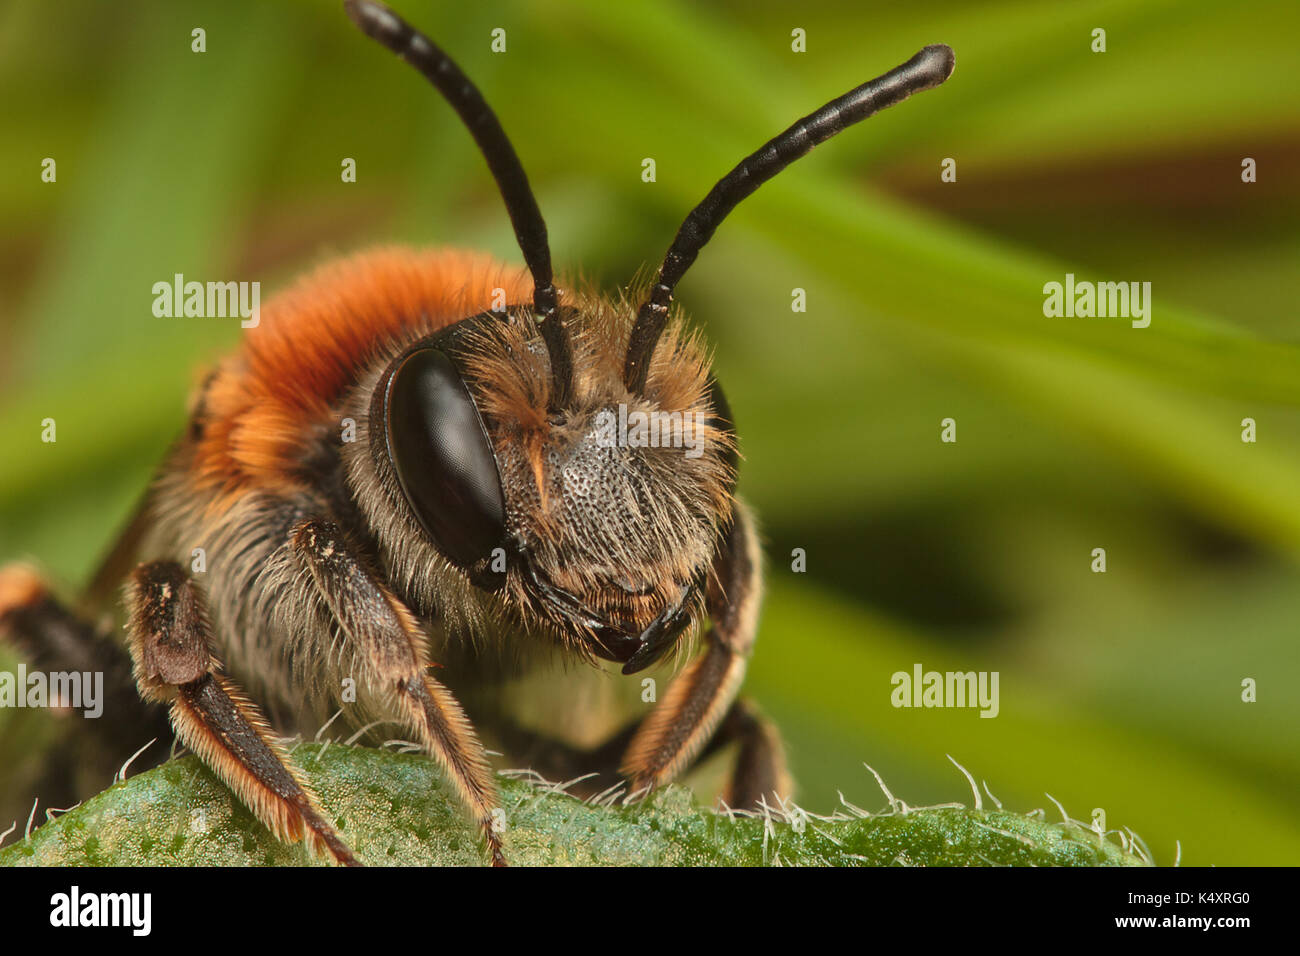 Mining Bee - Stock Image